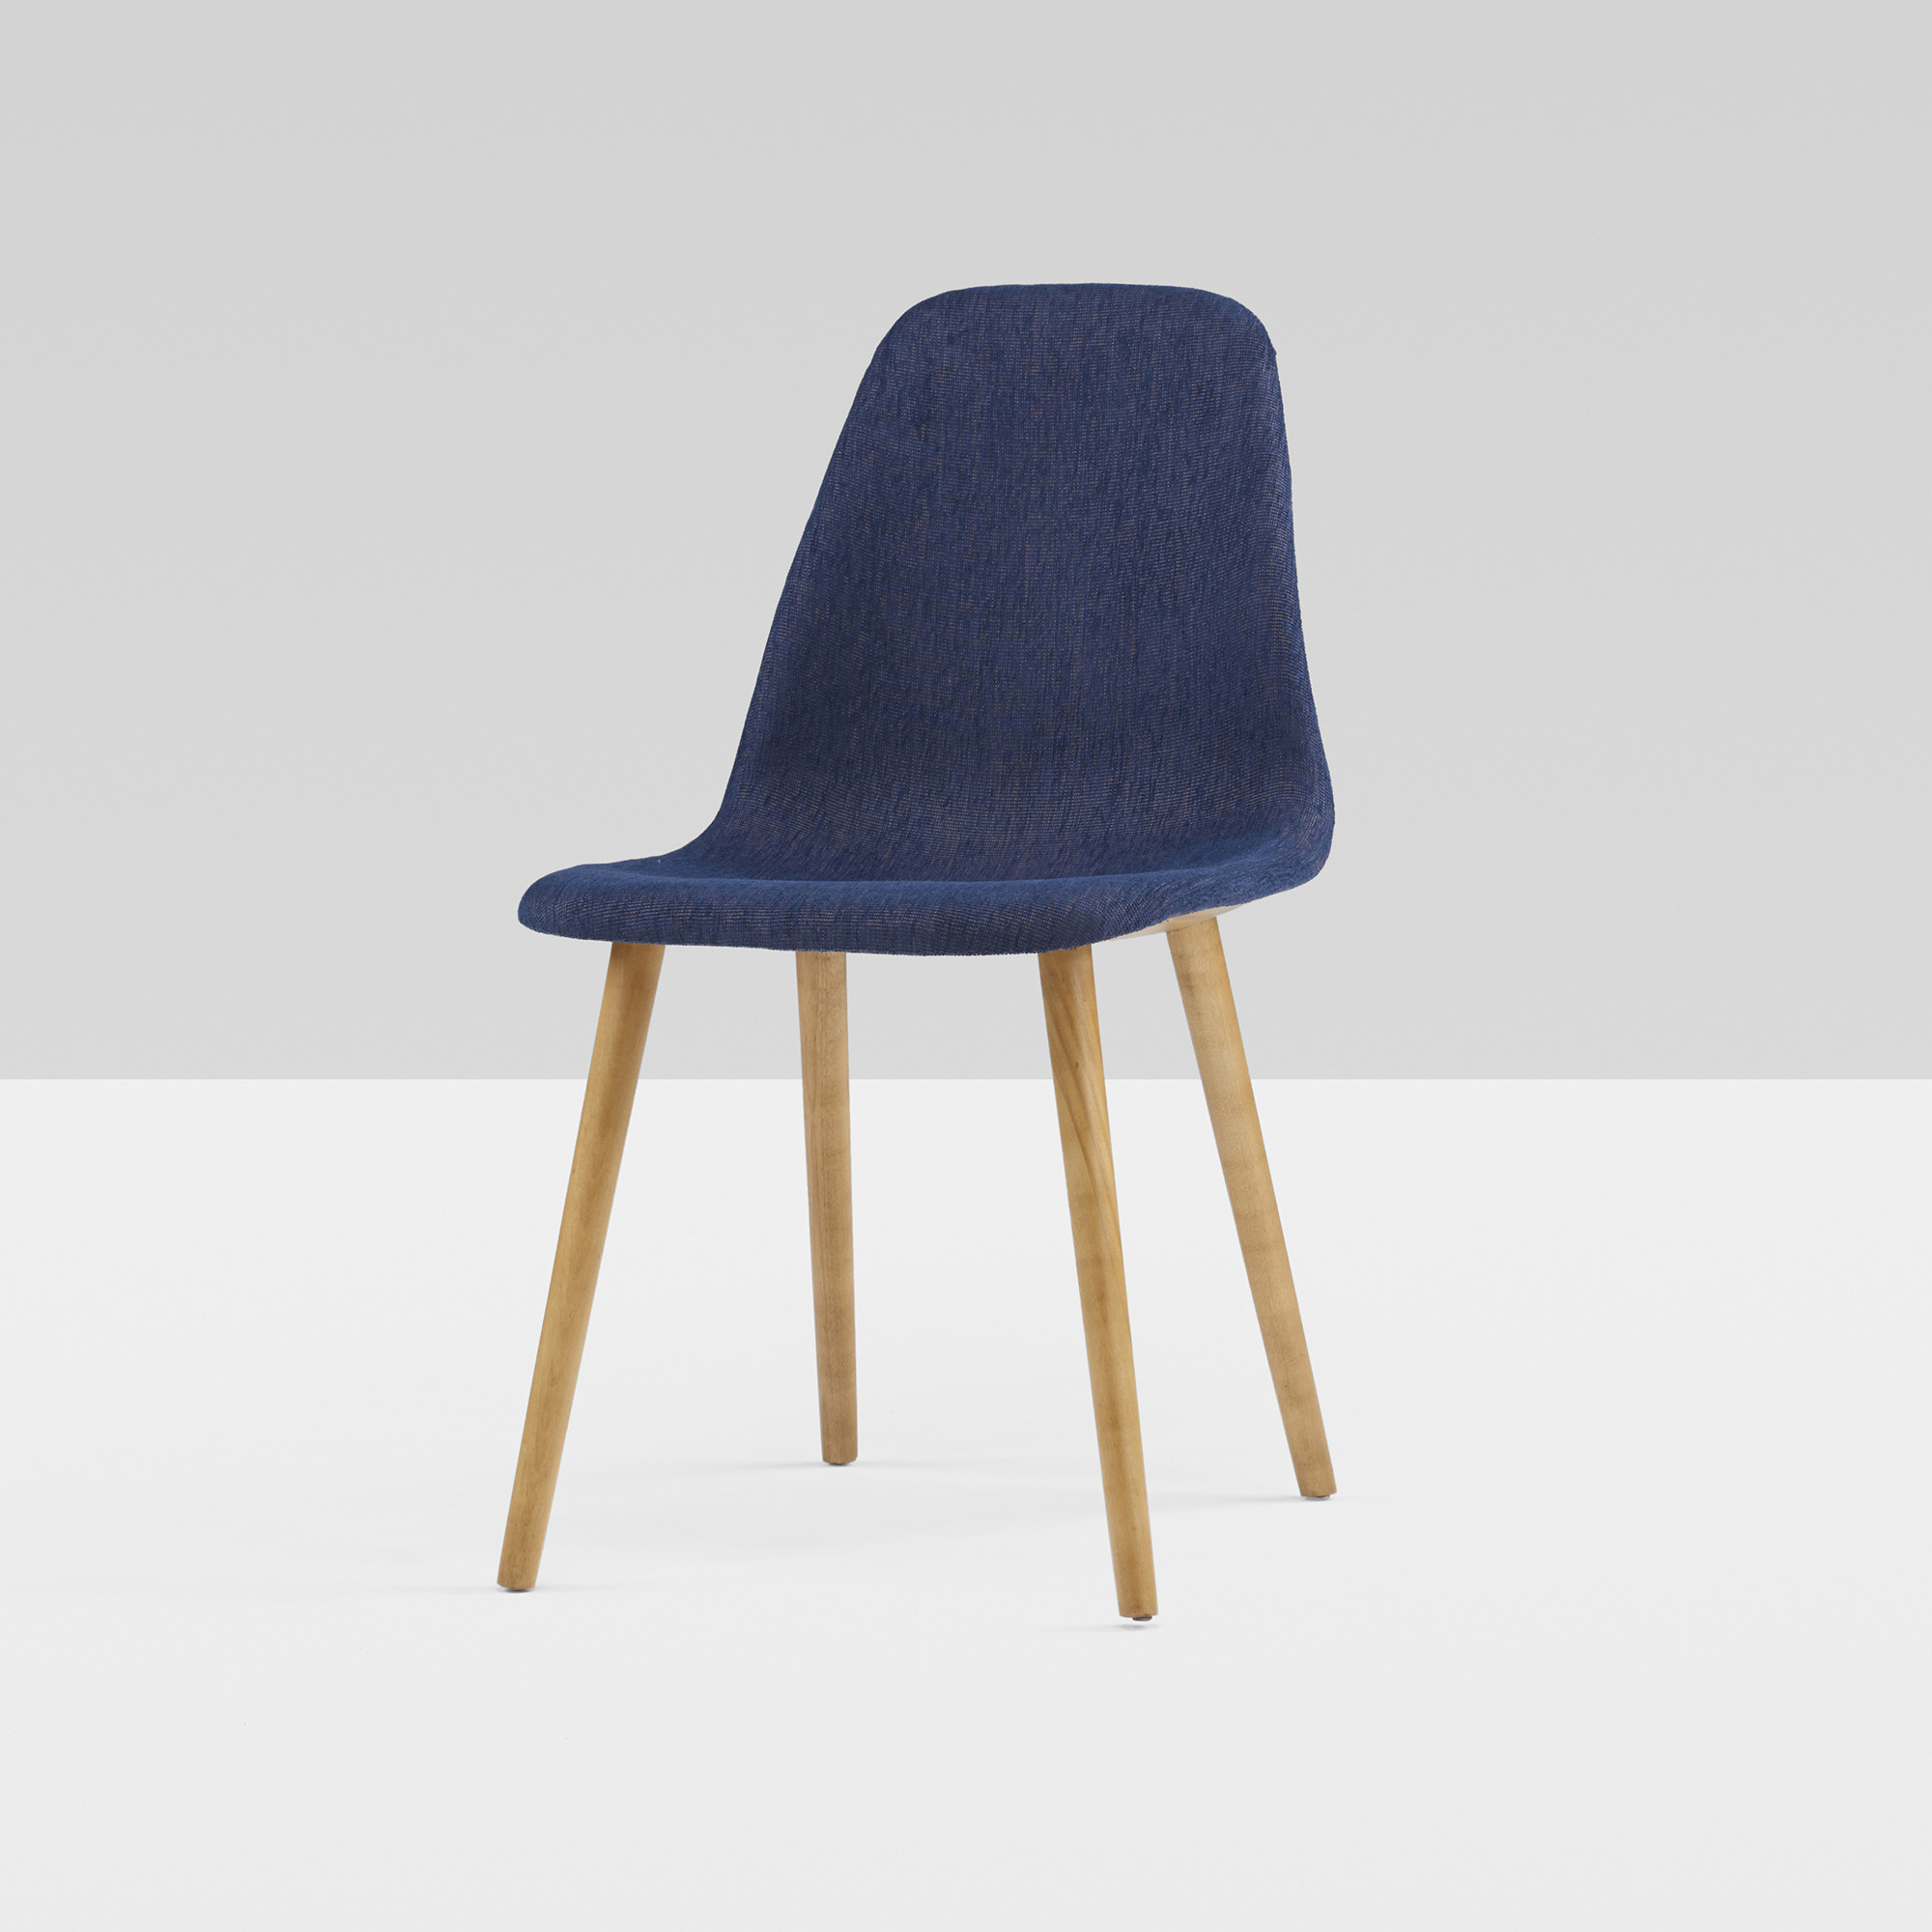 chair design museum la z boy office 131 charles eames and eero saarinen from the